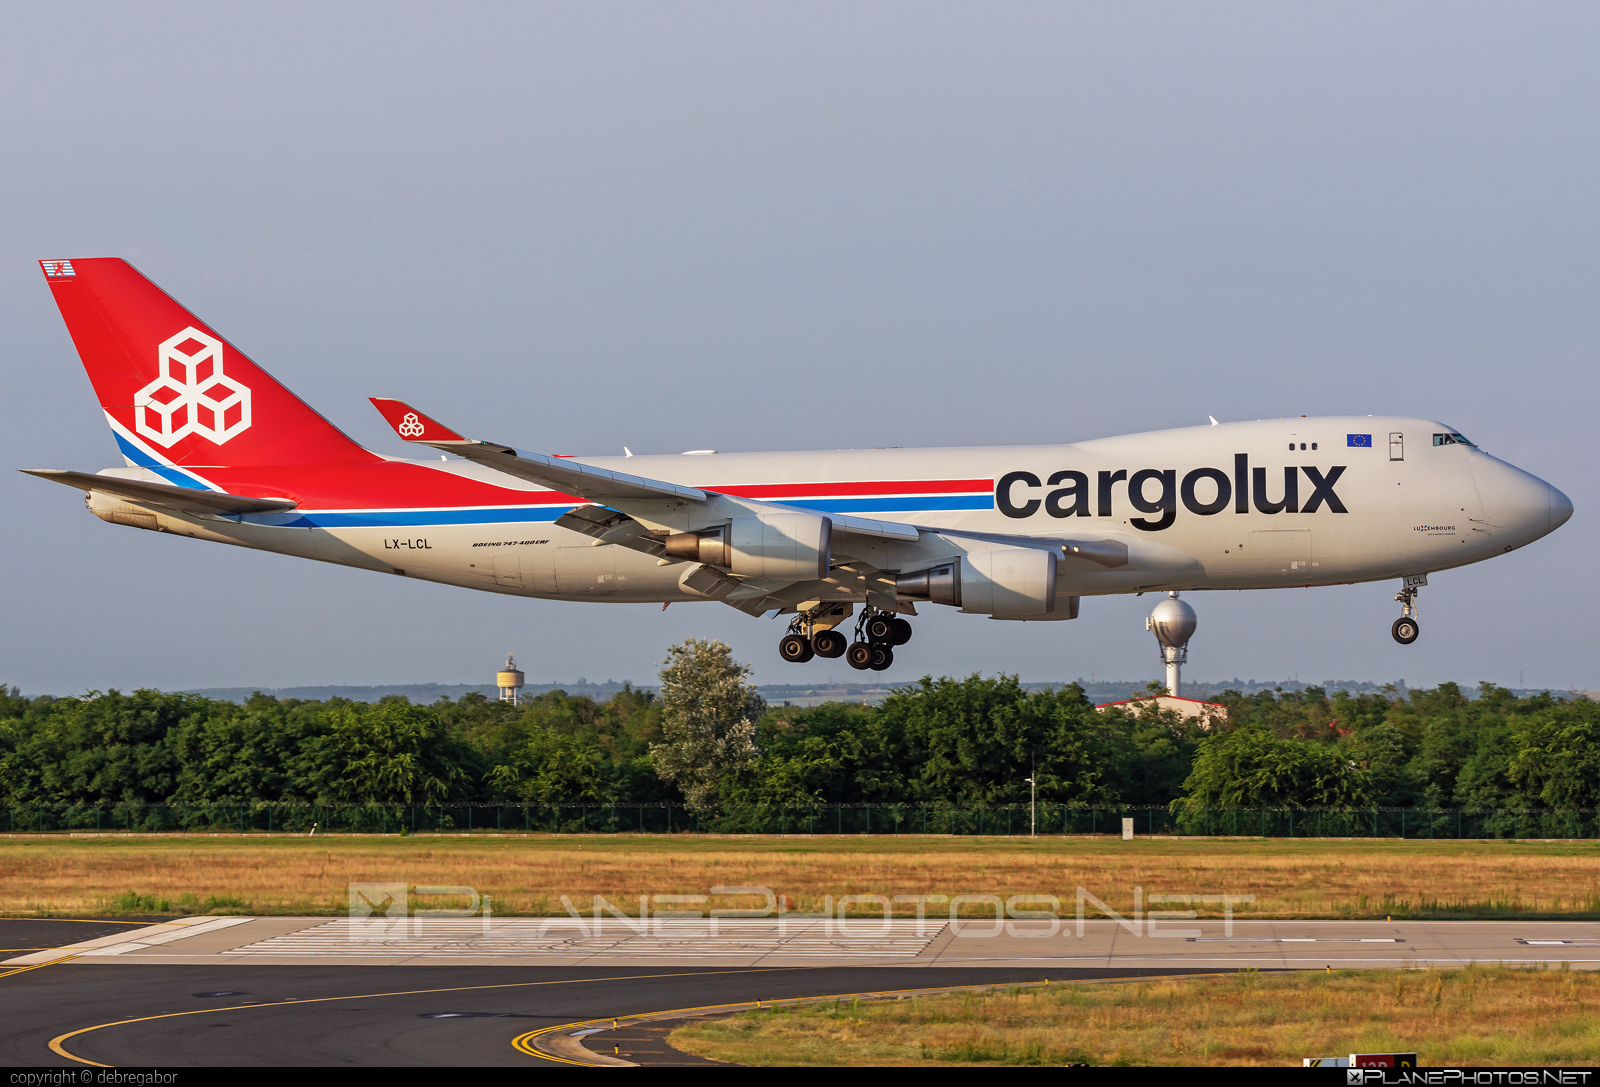 Boeing 747-400F - LX-LCL operated by Cargolux Airlines International #b747 #boeing #boeing747 #cargolux #jumbo